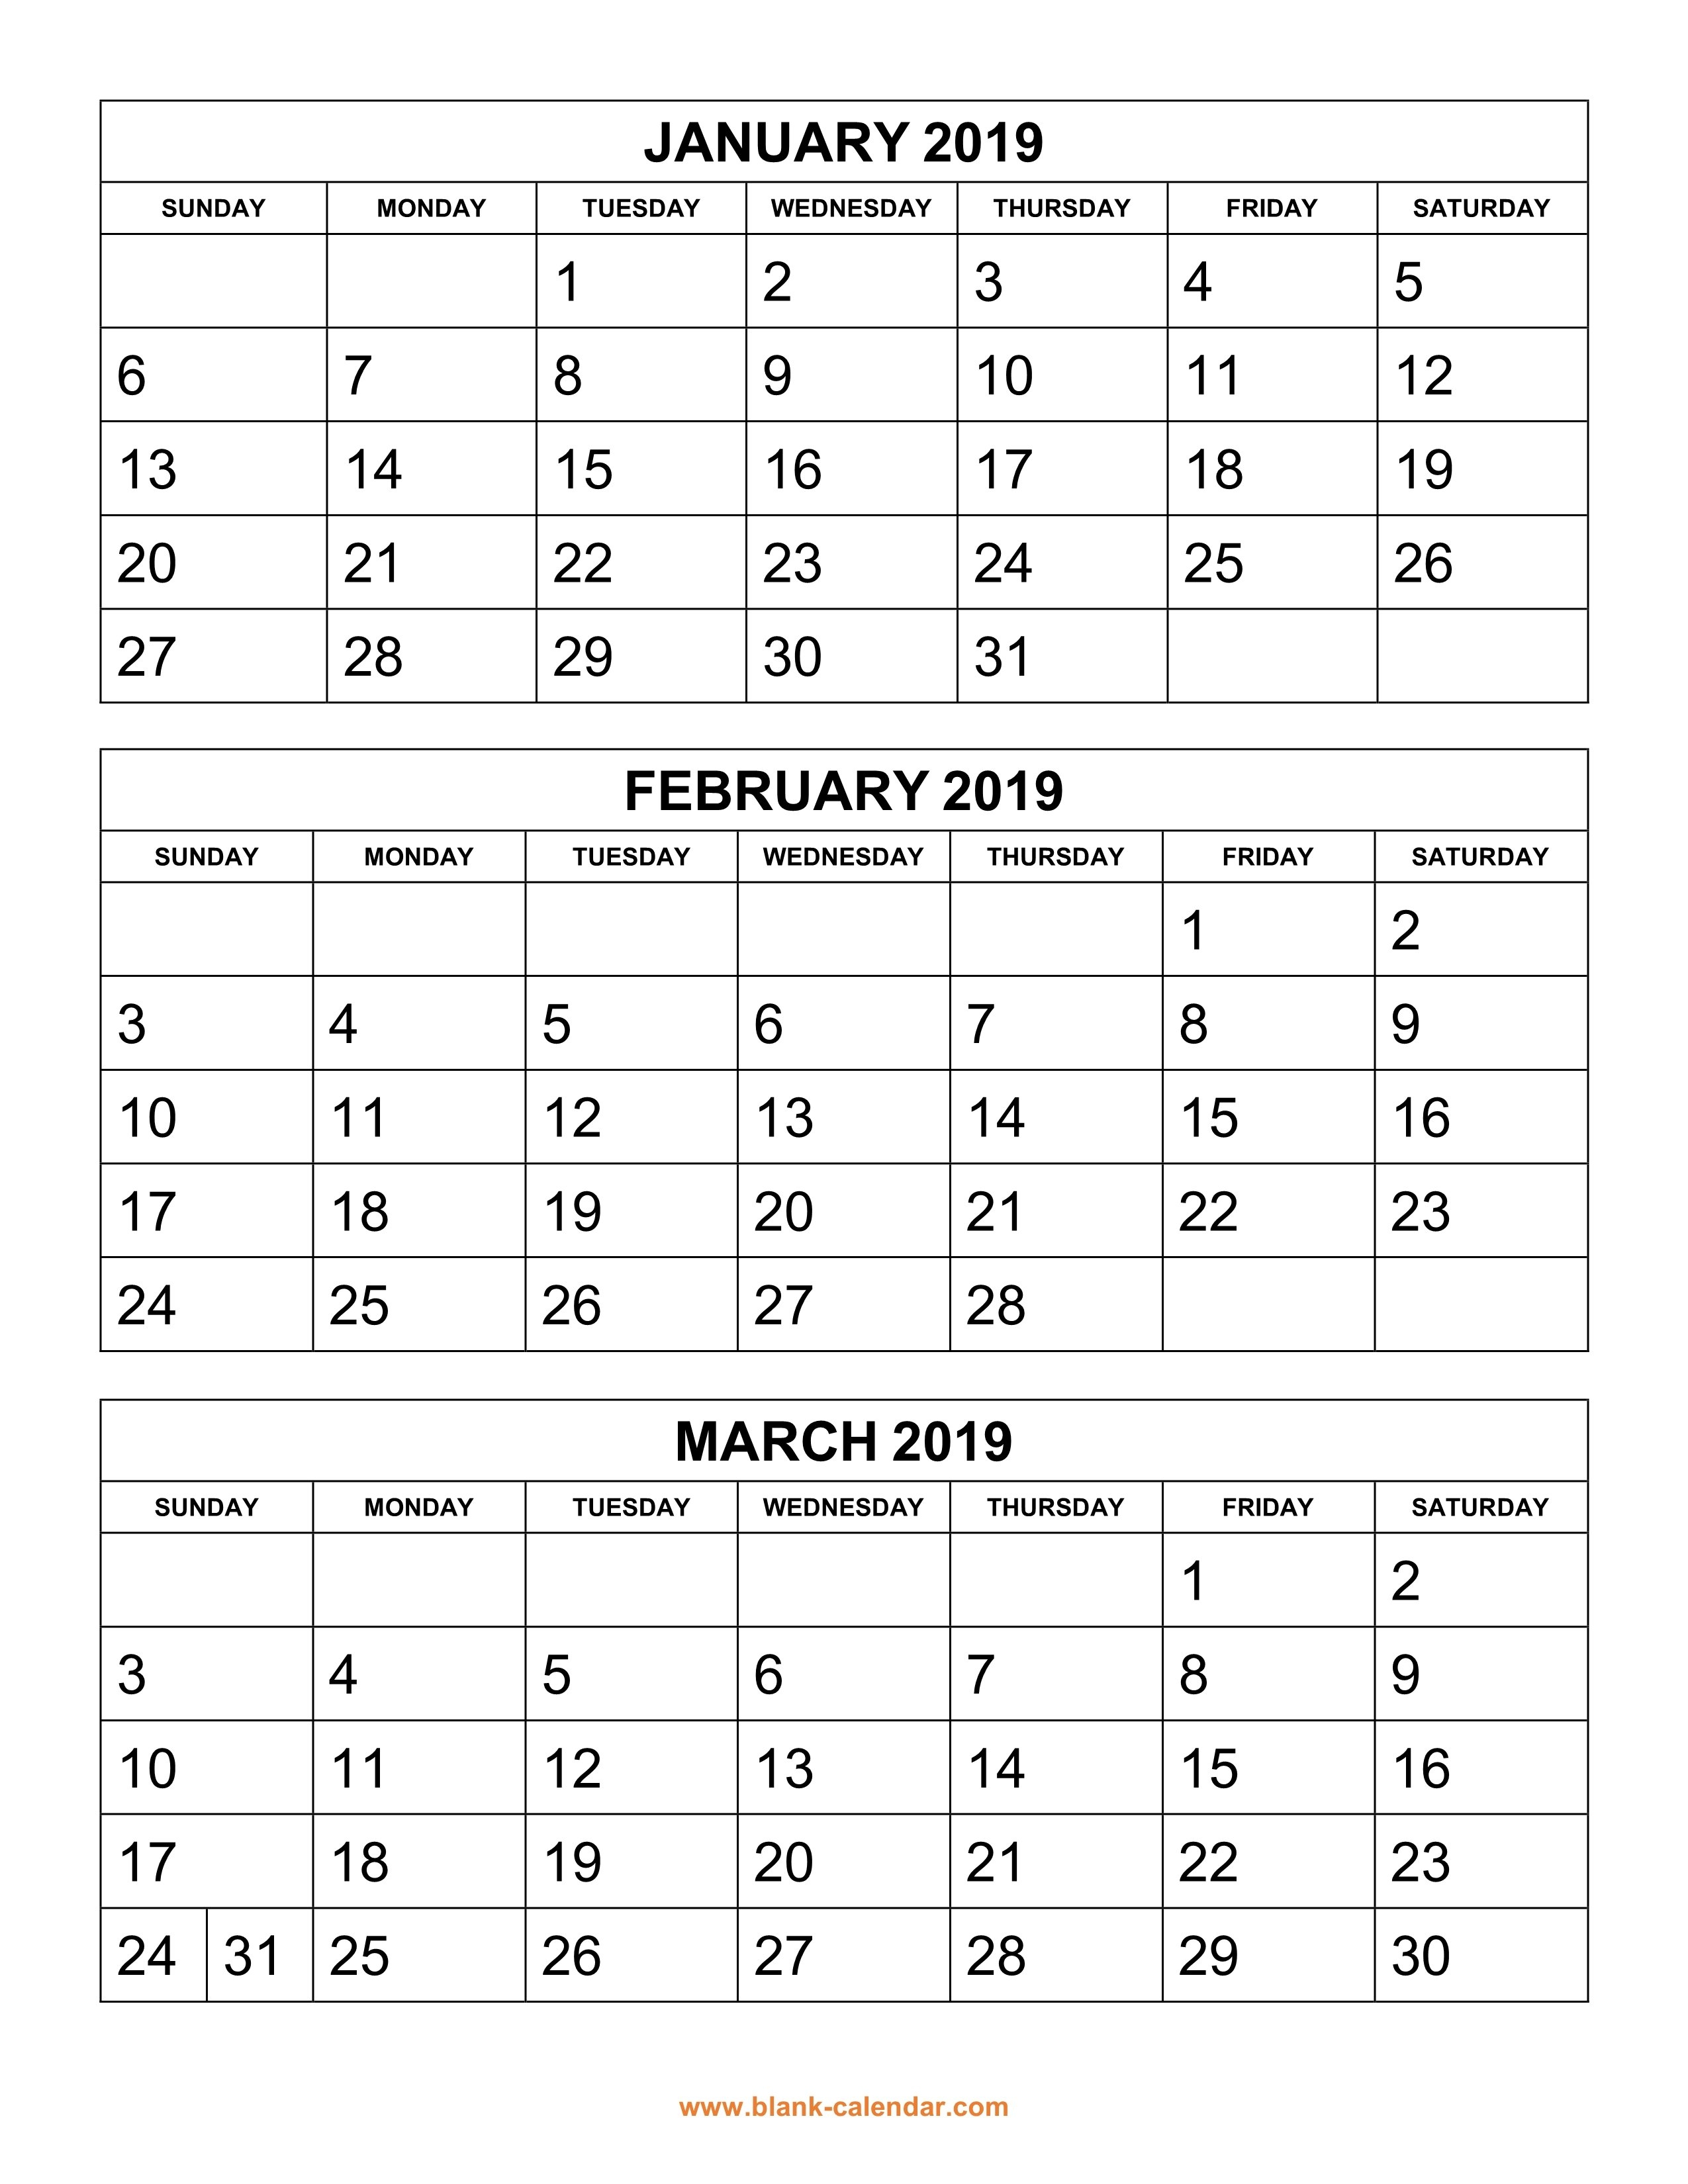 Free Download Printable Calendar 2019, 3 Months Per Page, 4 Pages Calendar 2019 By Month